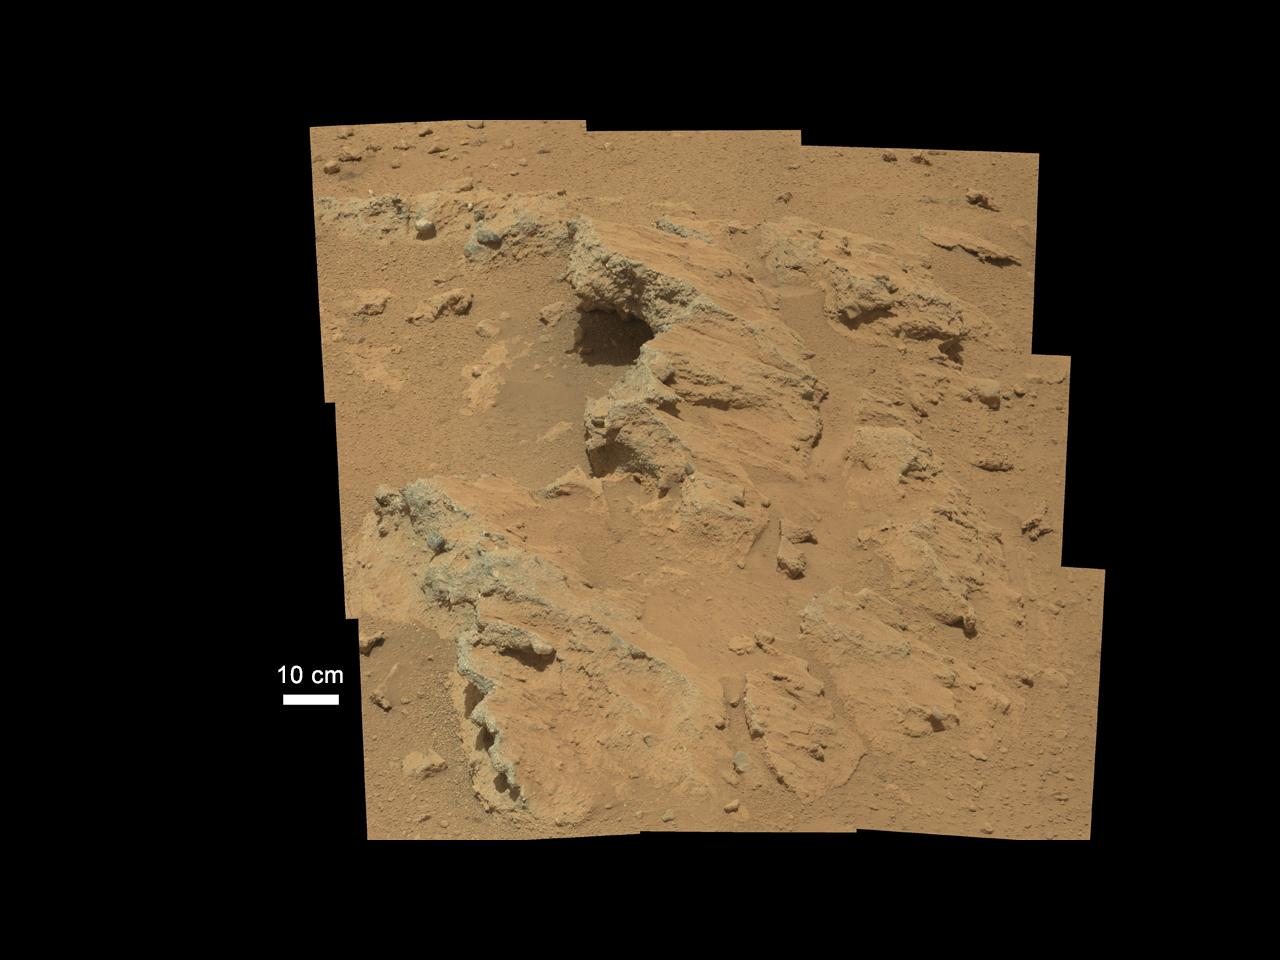 Mosaic view of the Hottah outcropping (Photo: NASA/JPL-Caltech/MSSS)